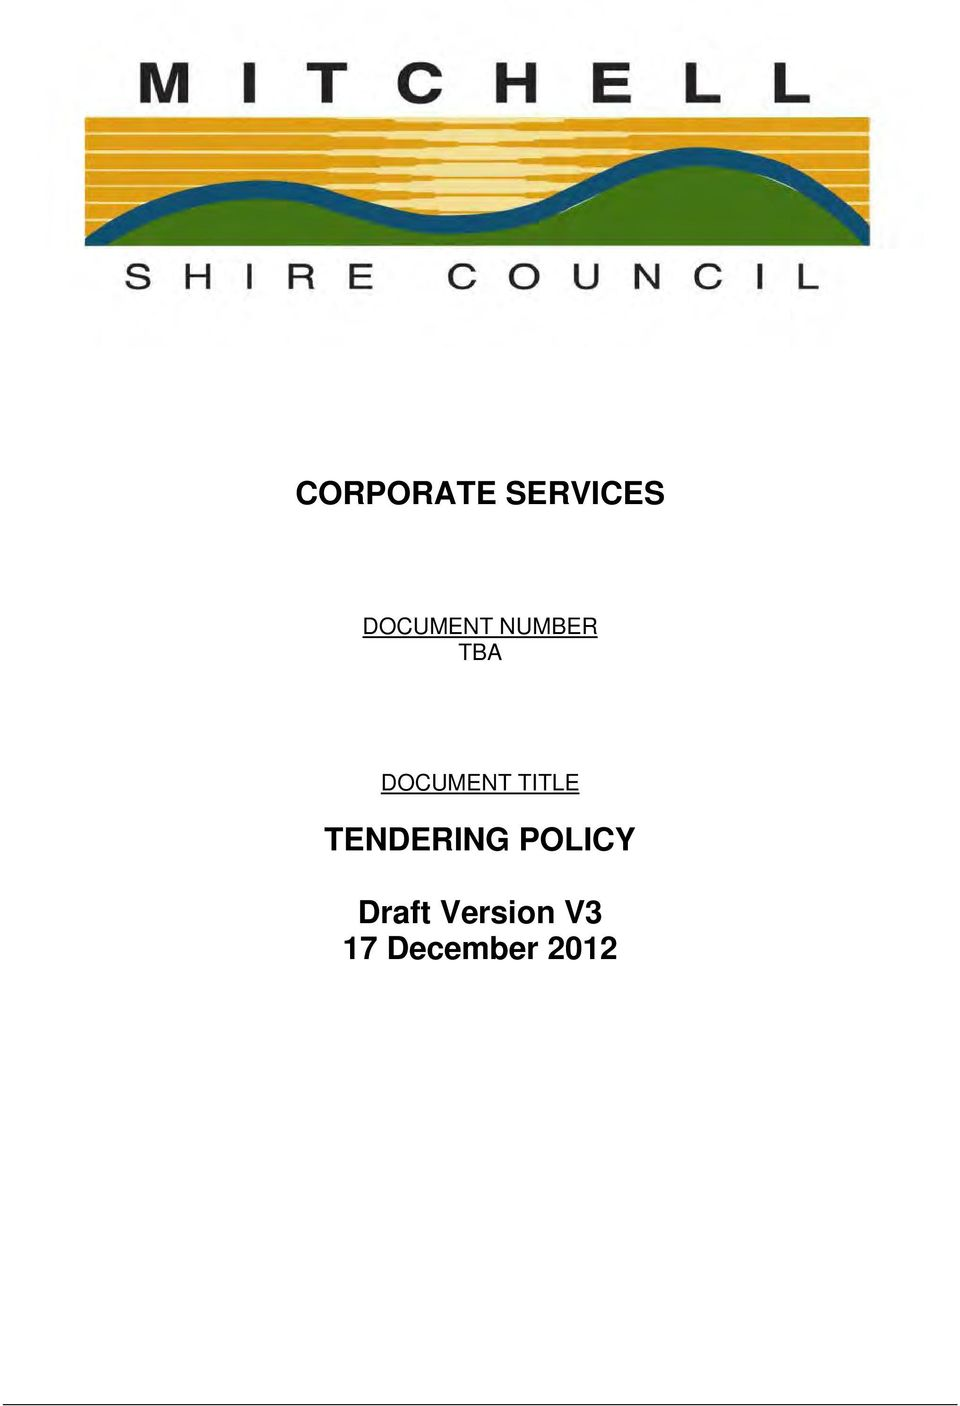 DOCUMENT TITLE TENDERING